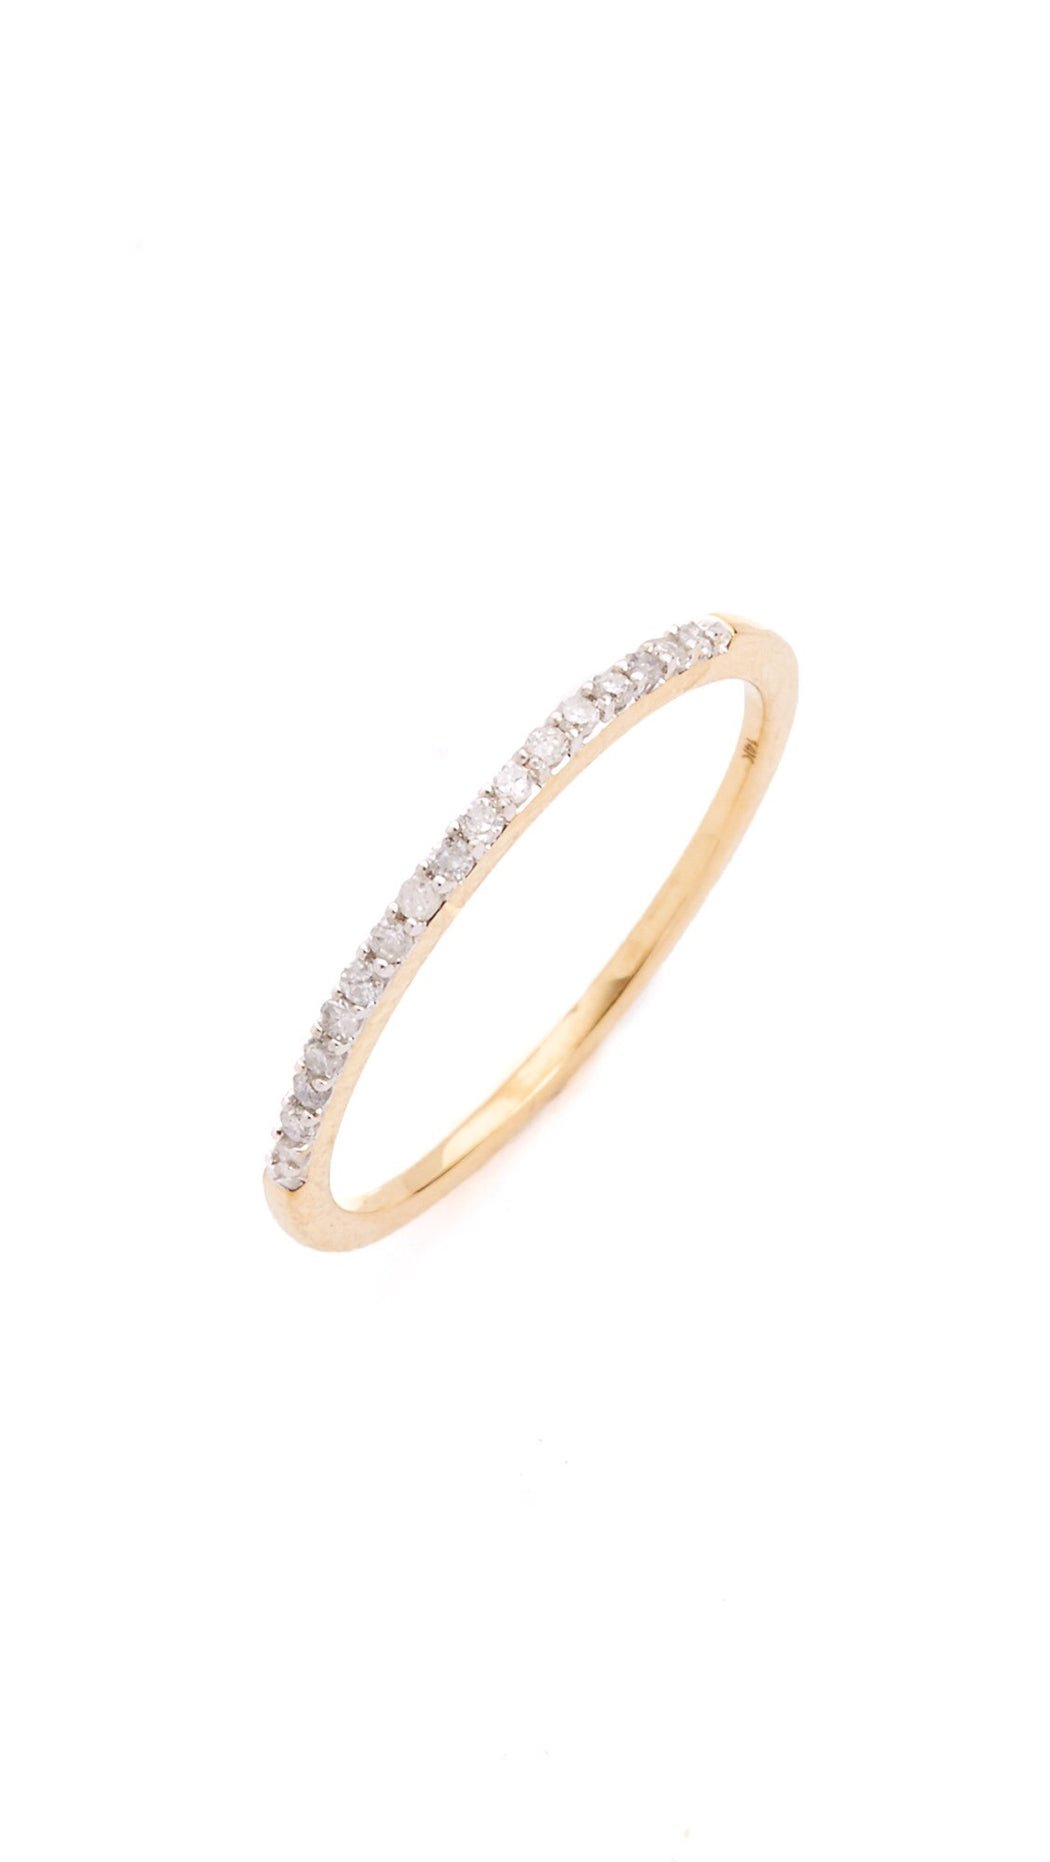 Adina Reyter Pavé Yellow Gold Band